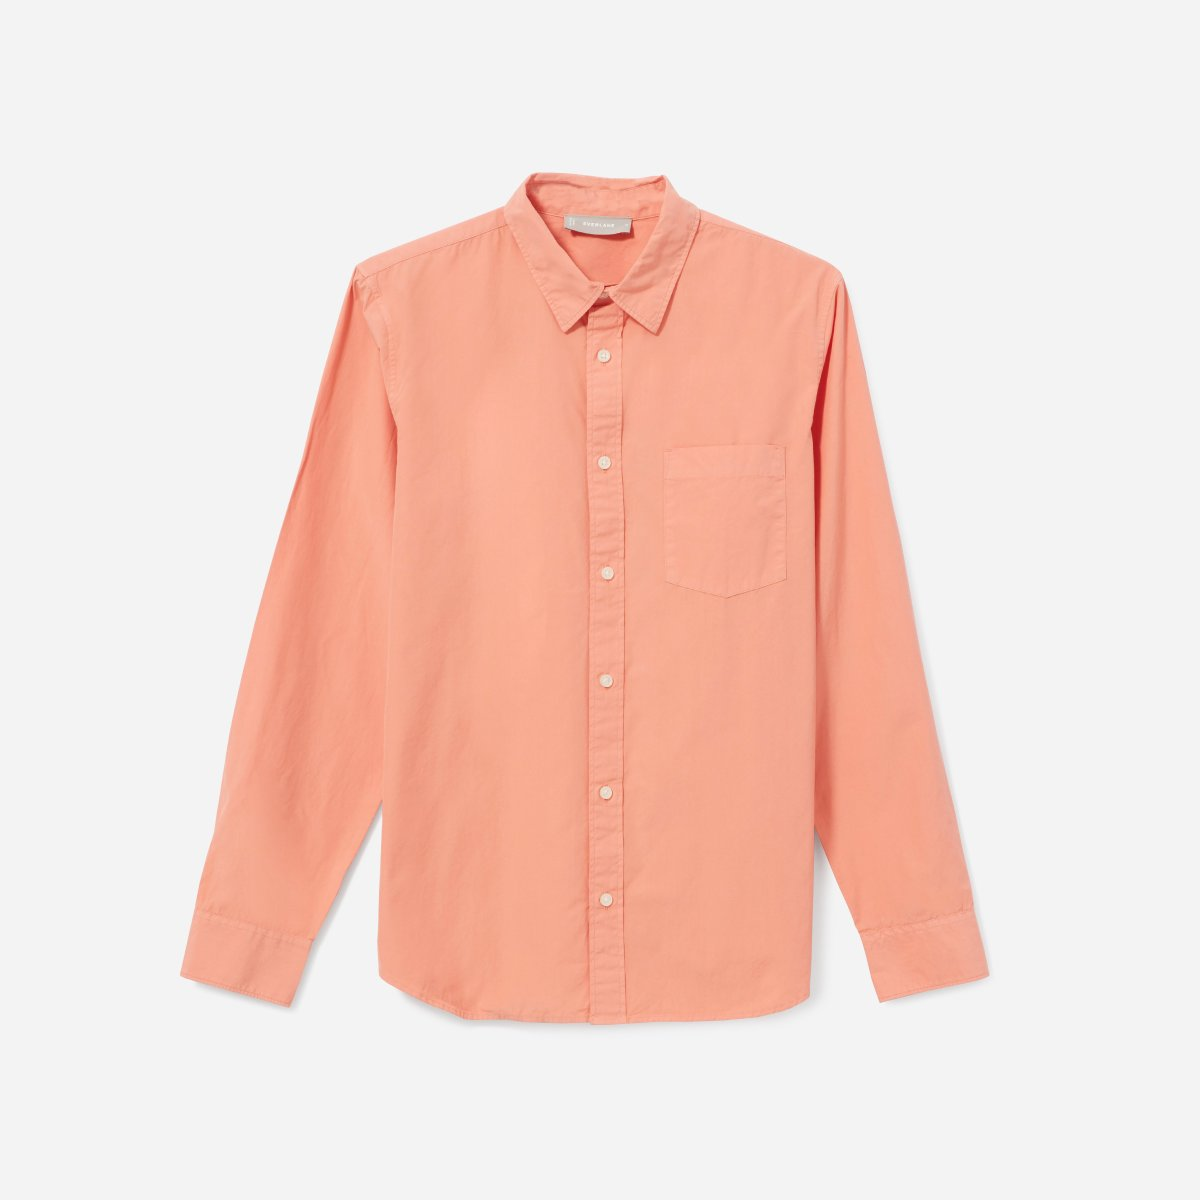 Everlane, The Garment-Dyed Cotton Slim Fit Shirt, Coral, $48